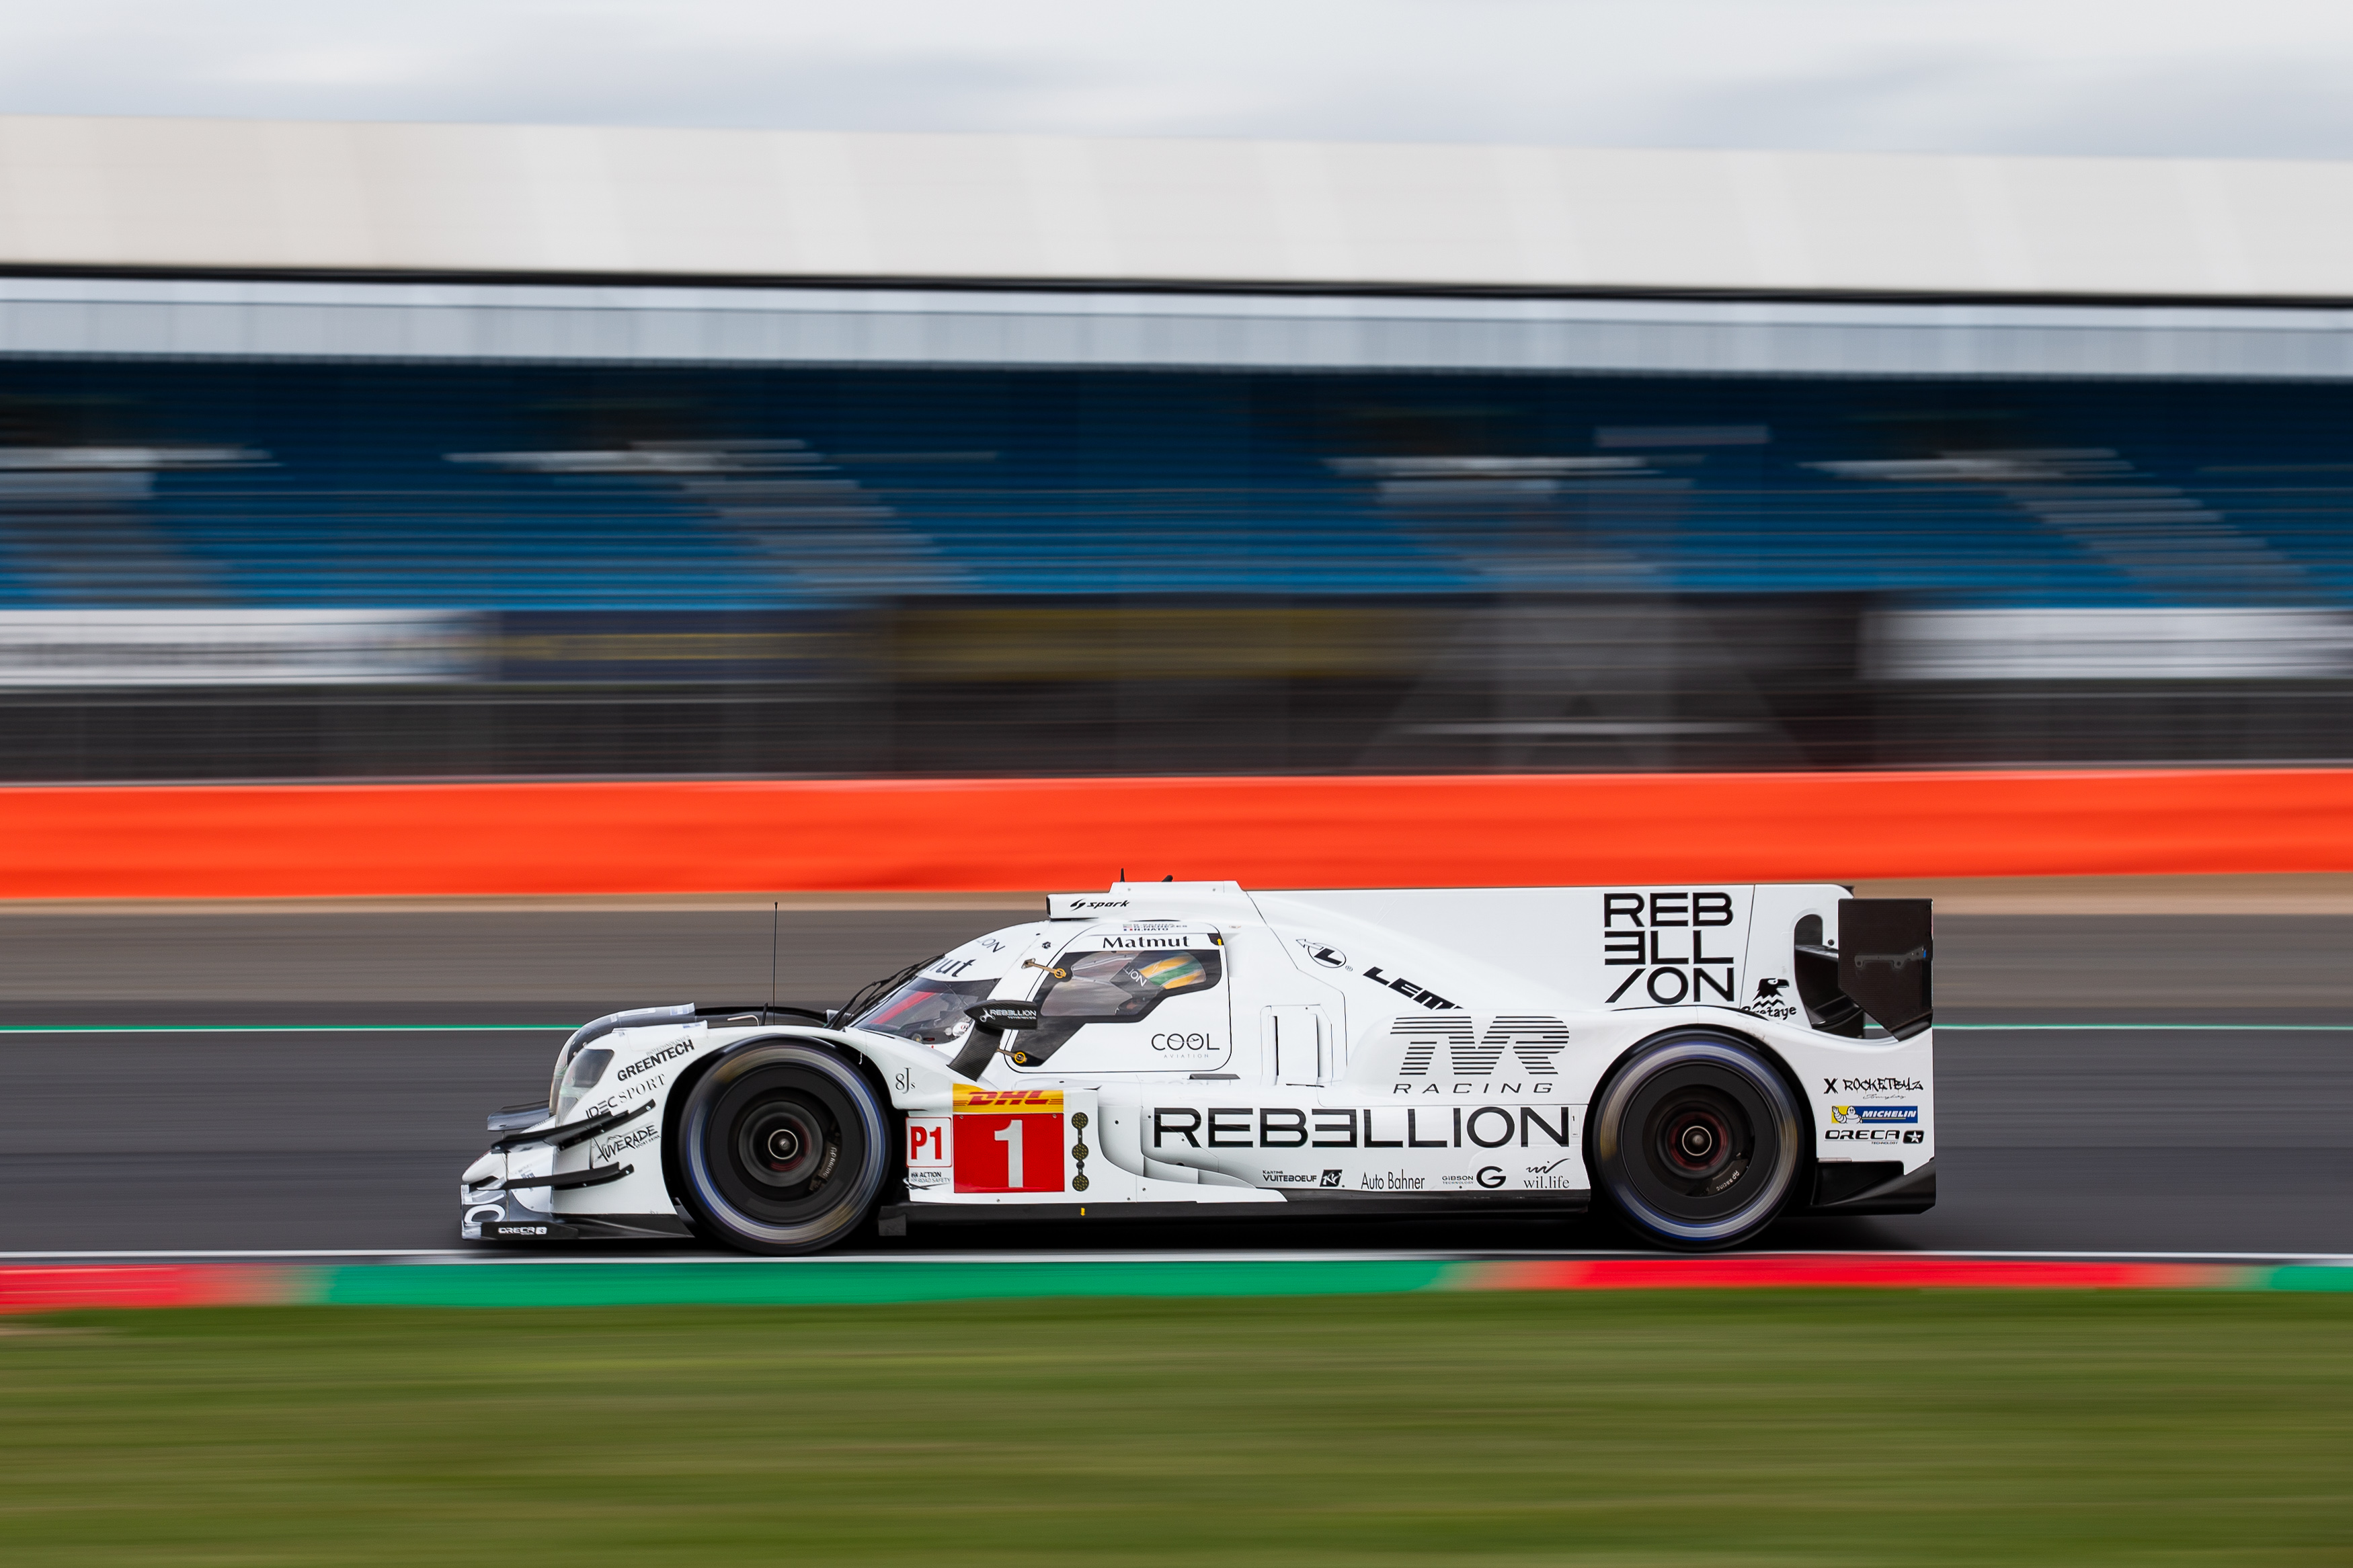 Photo of Silverstone dá as boas-vindas para a temporada 2019-20 da World Endurance Championship